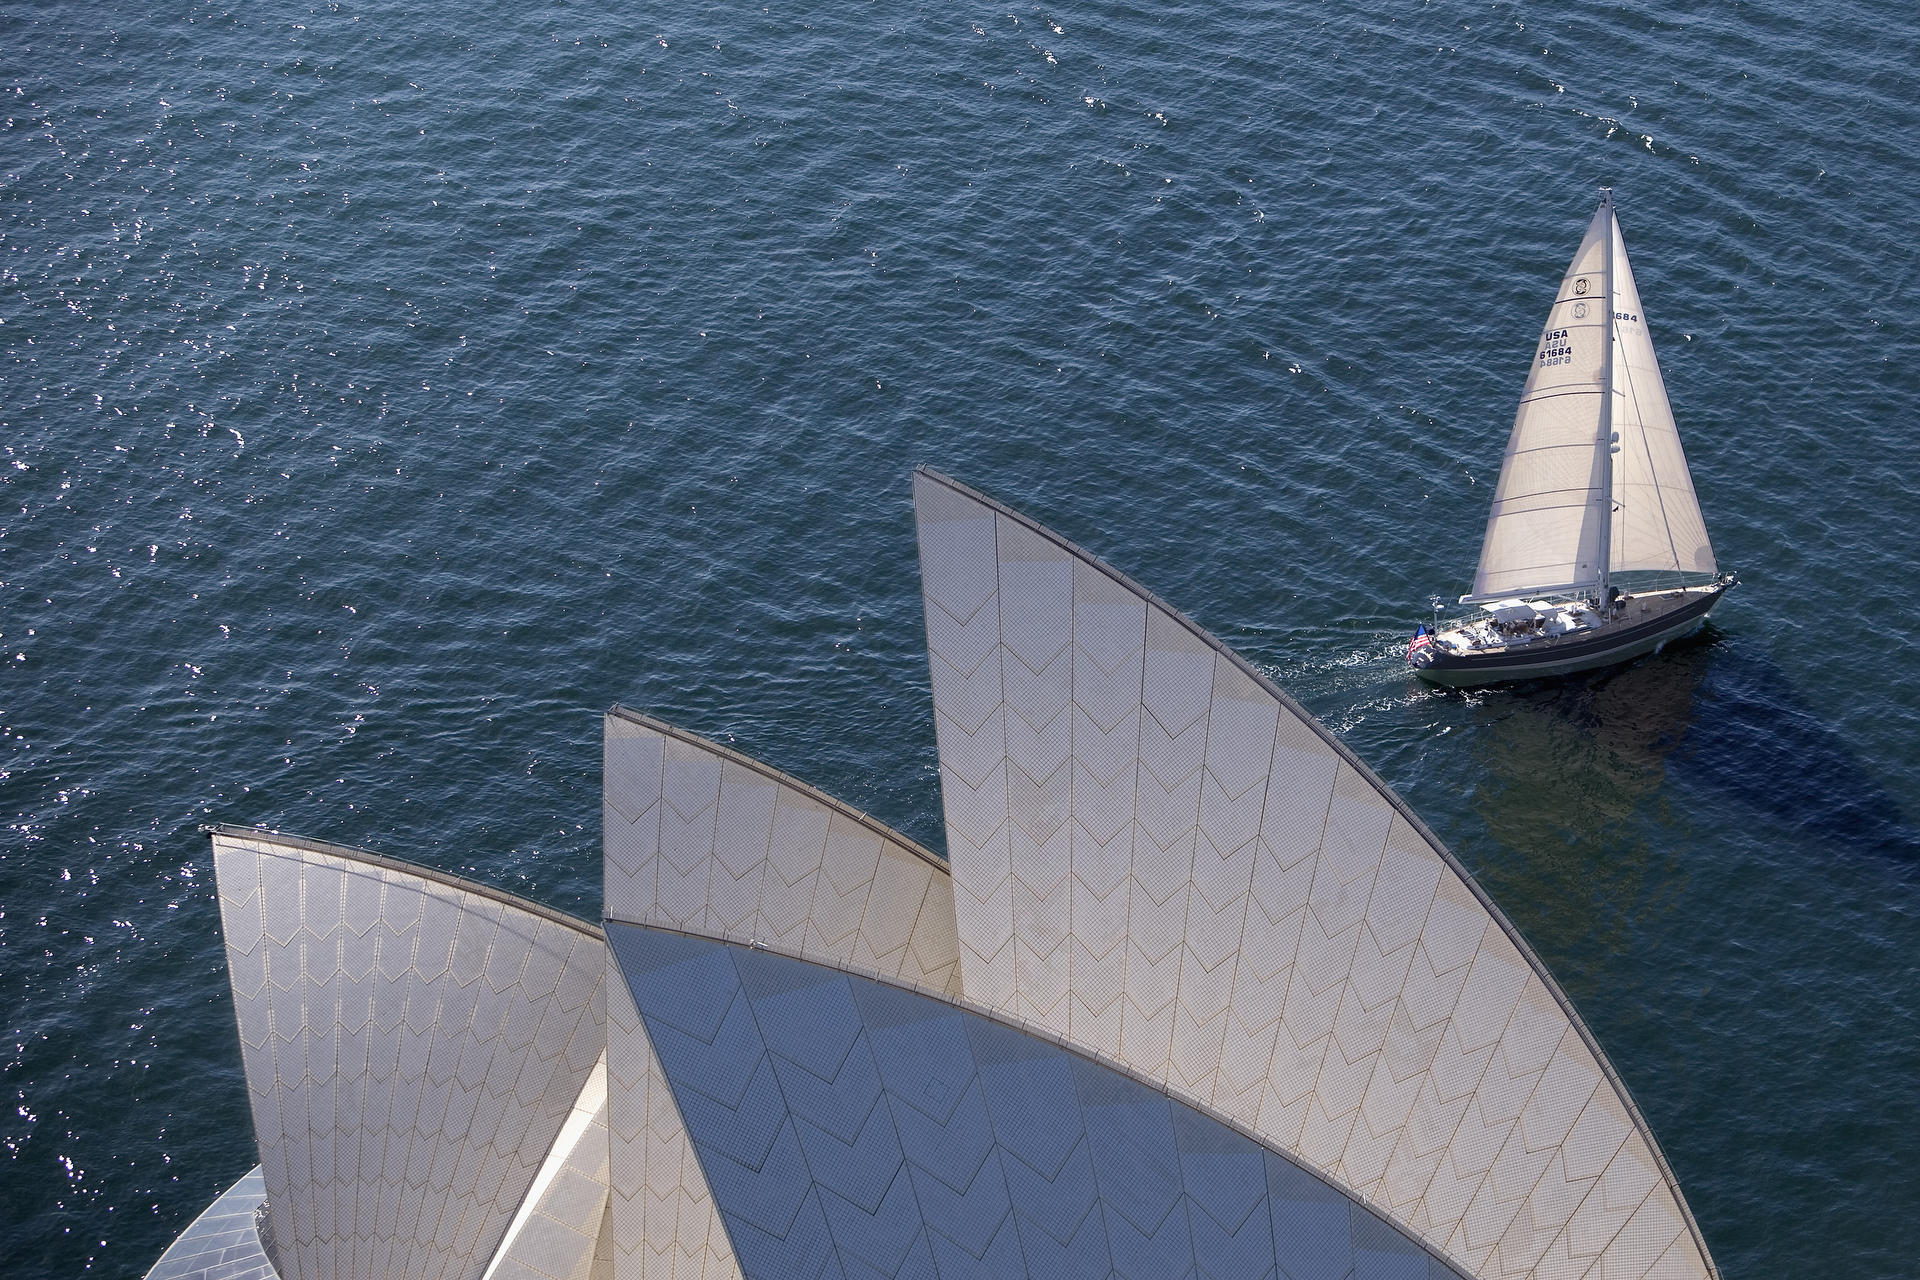 Sydney Superyacht & Boat Photographer, Super Yacht, Boats, Luxury, Rich, Famous, Dream, Design, Travel, Ocean, Yachts, Super Maxi, Lifestyle, Opera House, Aerial Photography